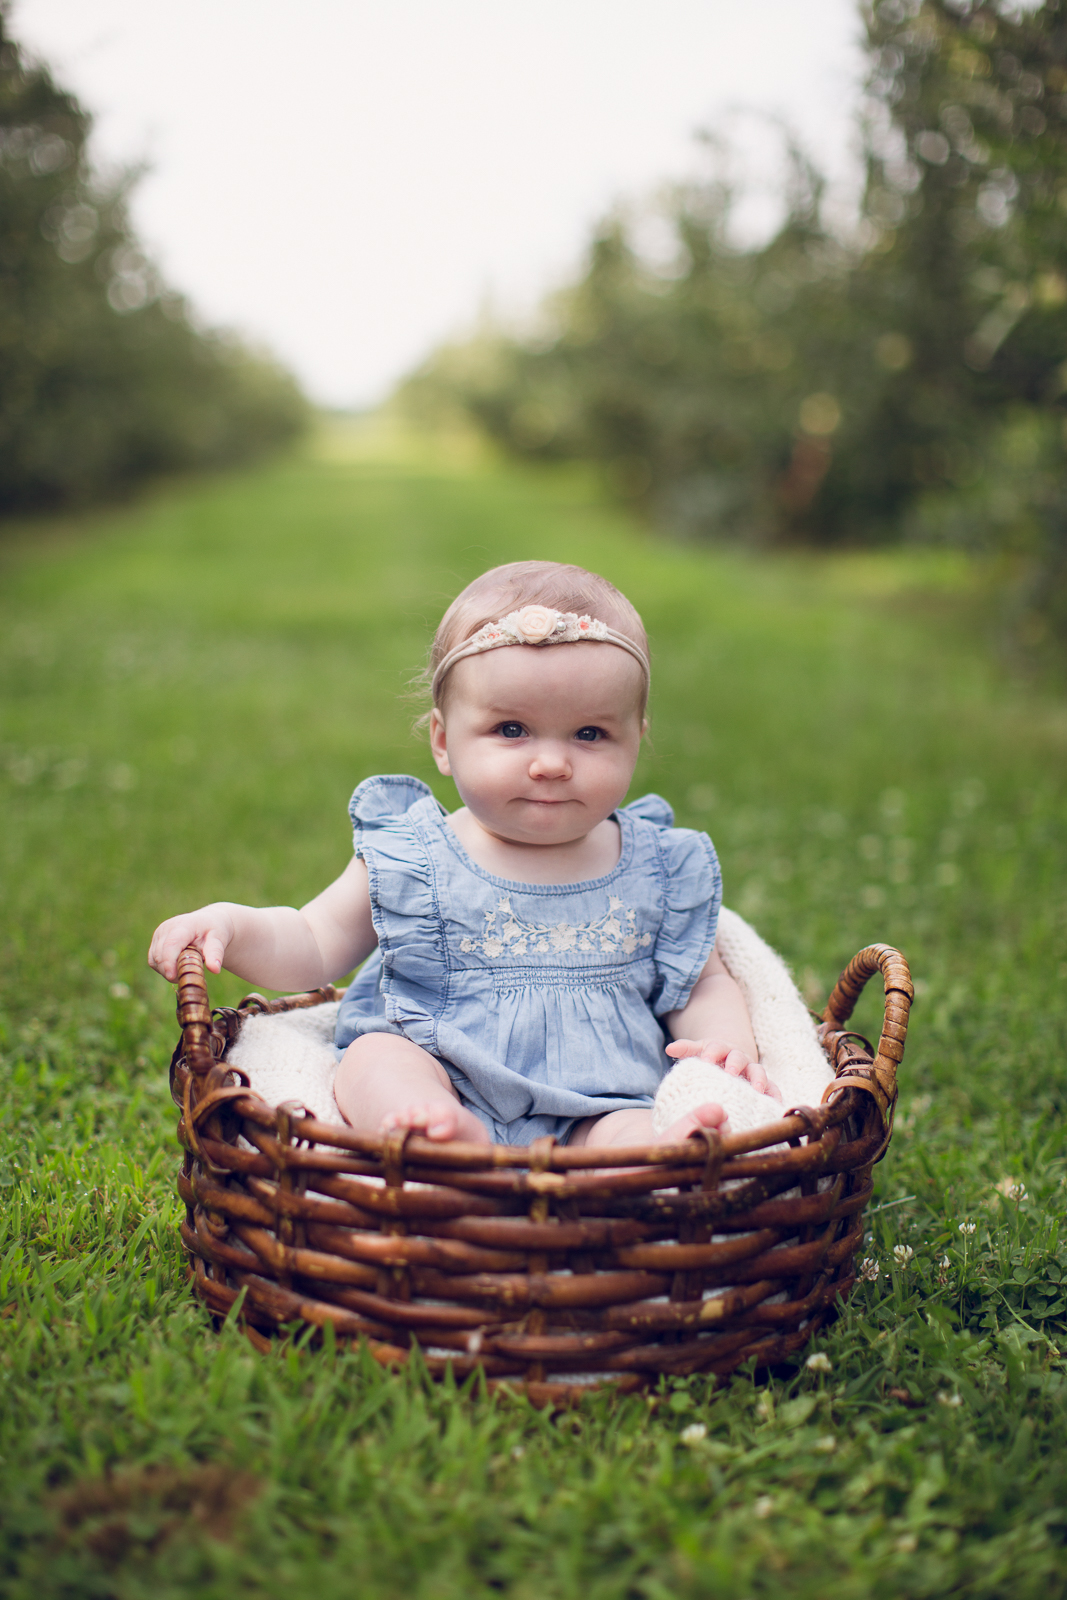 Hattie 6 month photographer lafayette indiana milestone photographer-18.jpg